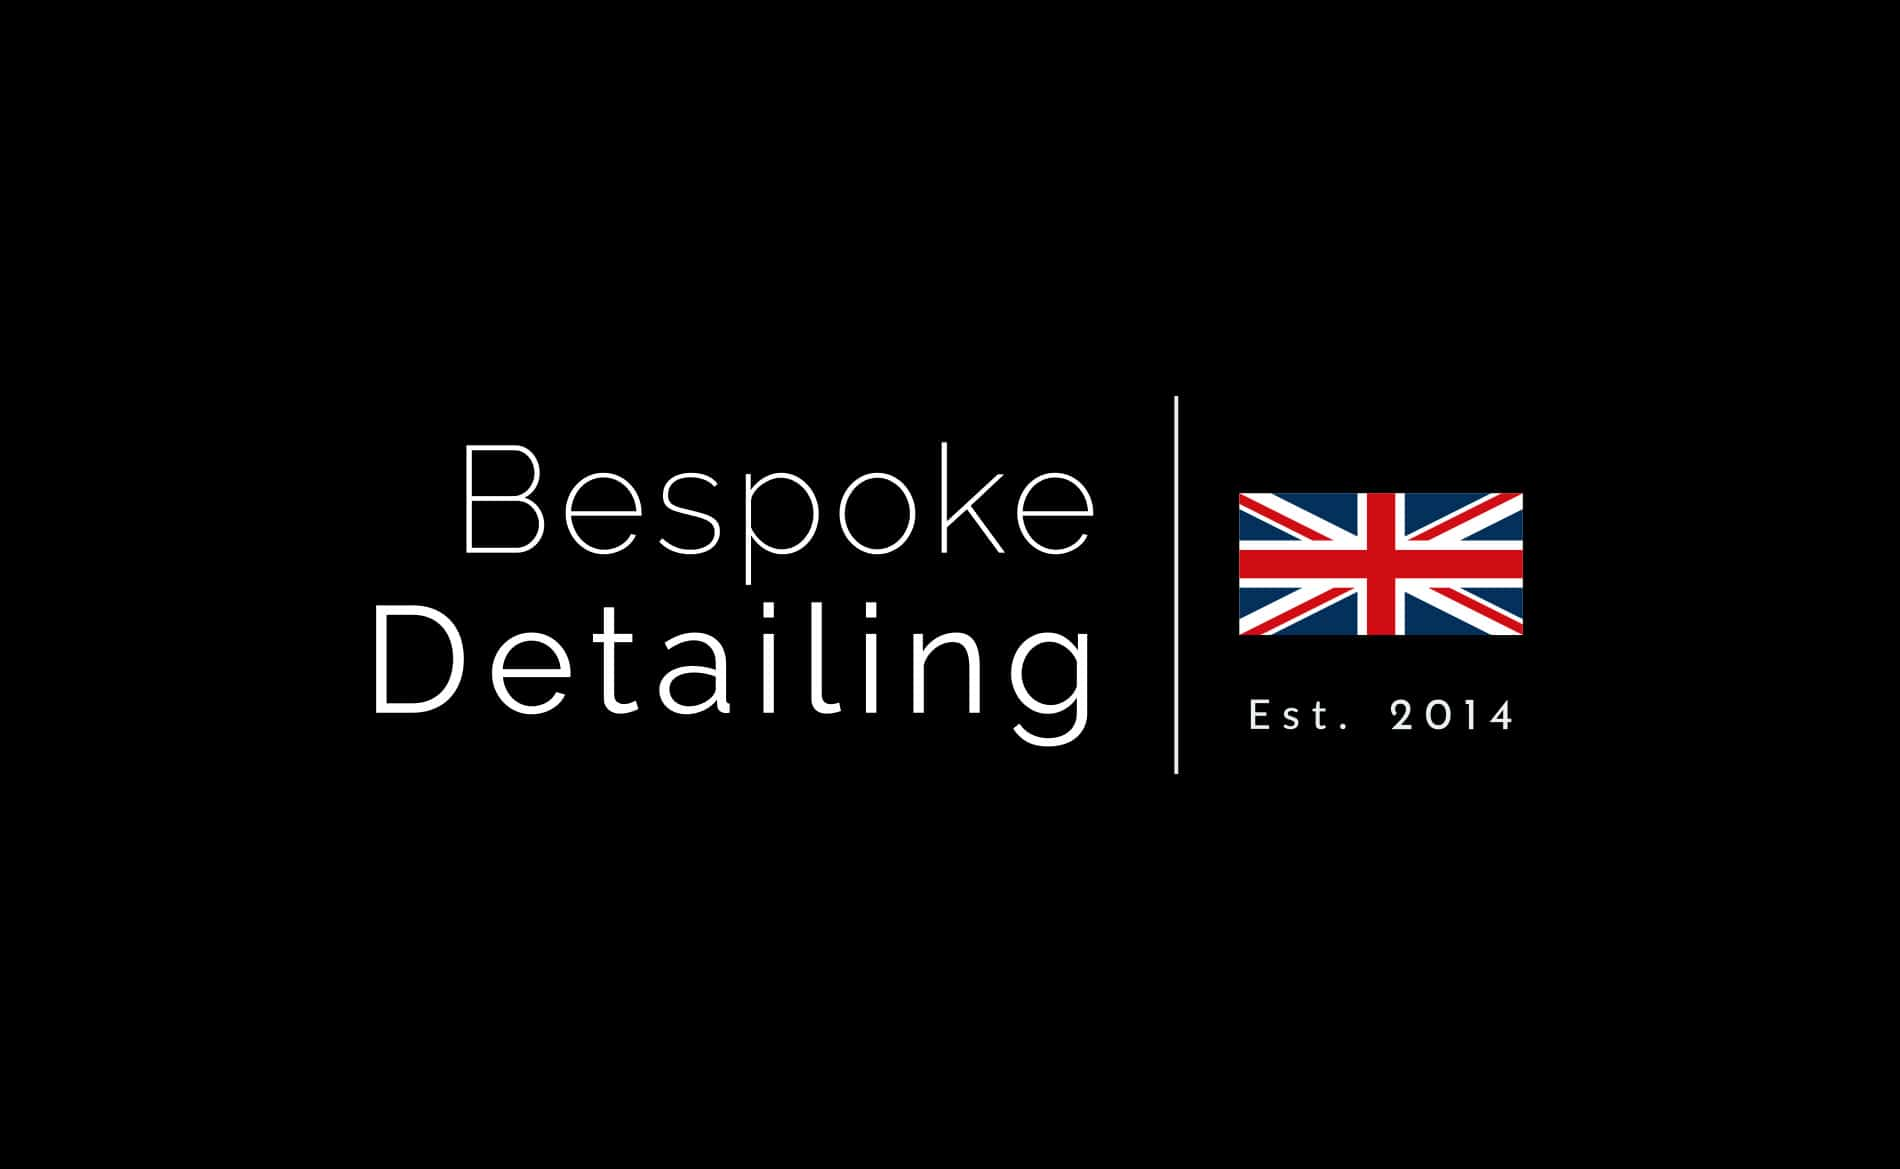 Graphic Design and Branding Services Bespoke Detailing Cheshire Logo Design